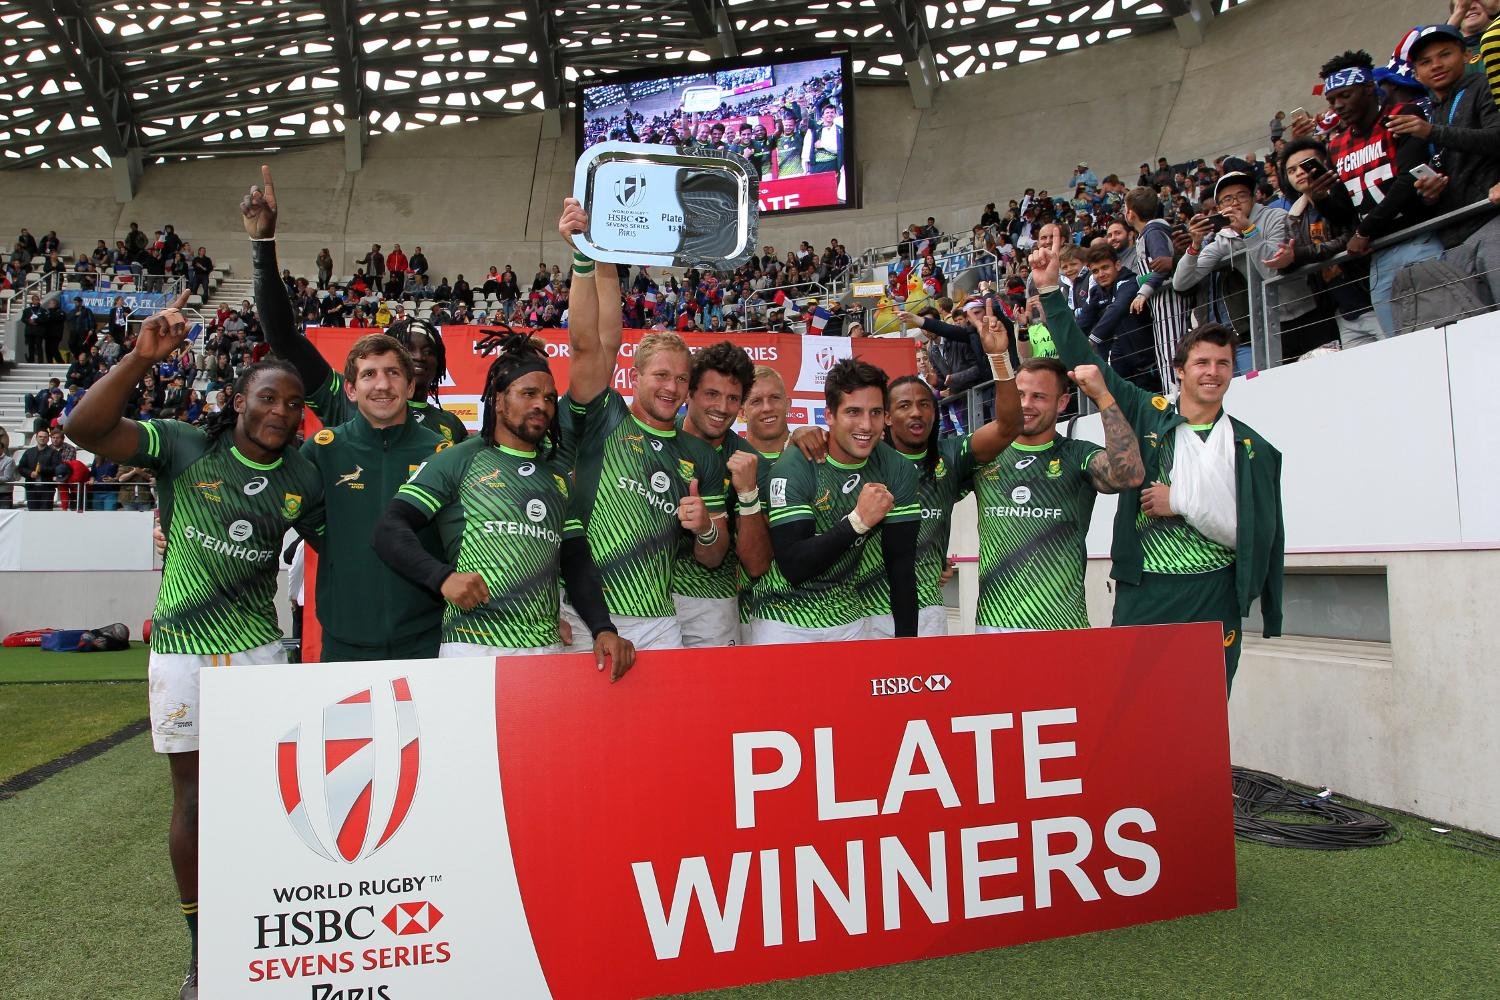 South Africa beat Australia to win the Plate in Paris